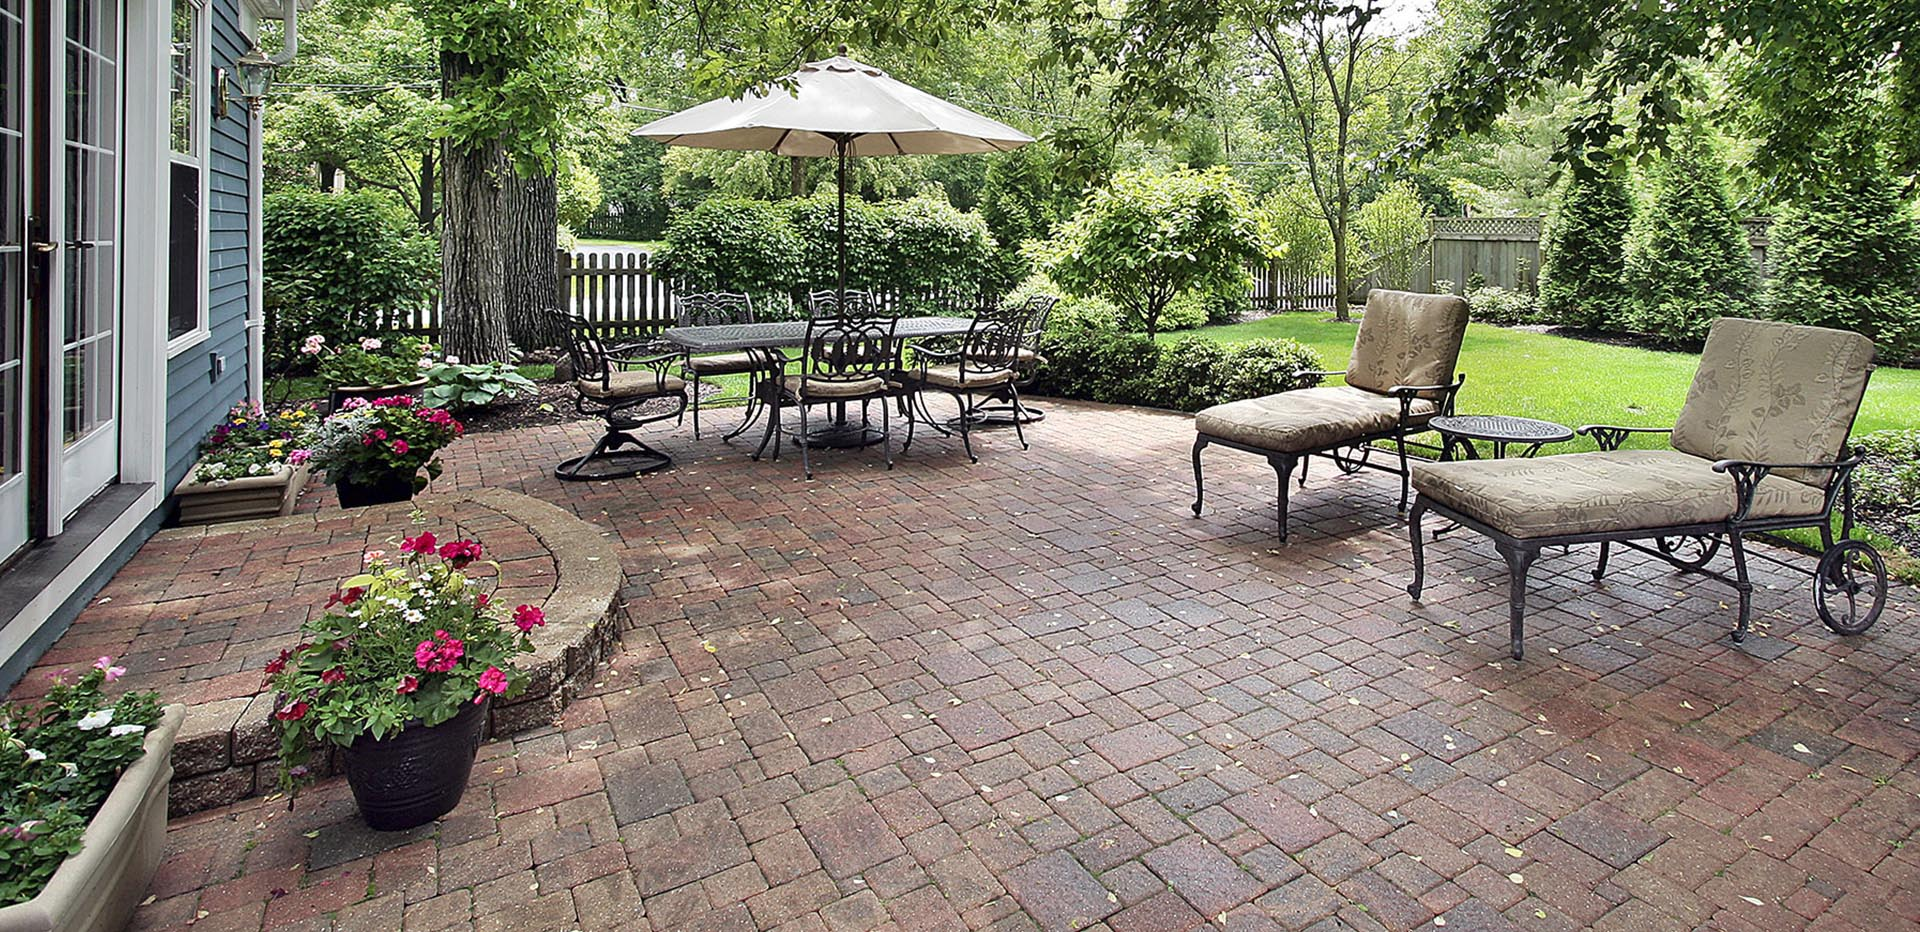 Why Global Pavers?